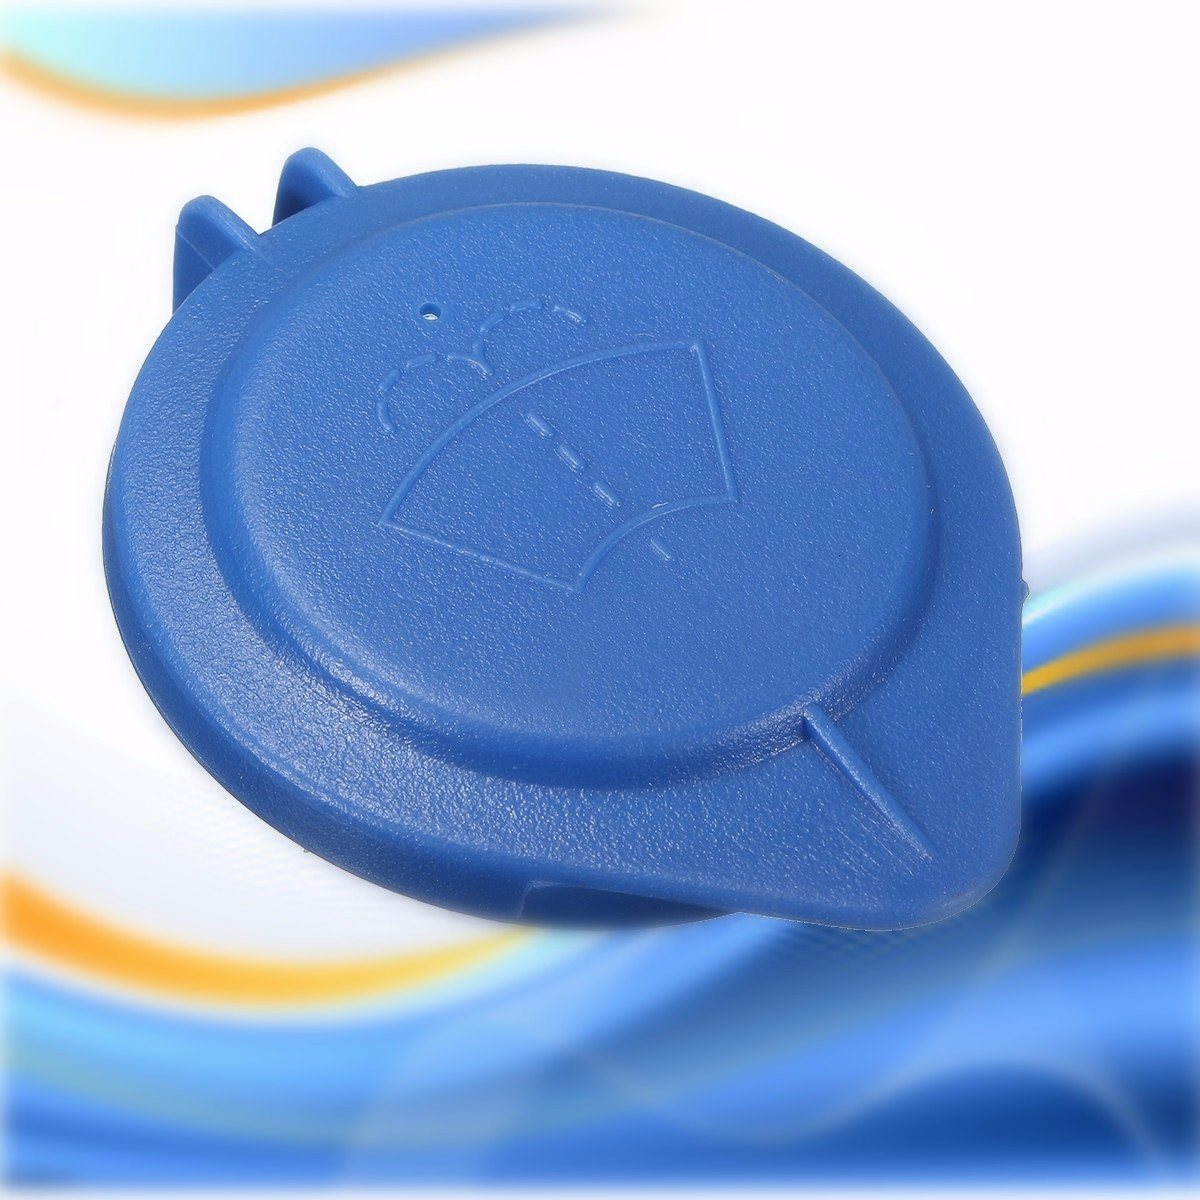 Washer Bottle Cap For Peugeot 3008 407 5008 -Citroen C5(2007/-) C6 OE 643237Washer Bottle Cap For Peugeot 3008 407 5008 -Citroen C5(2007/-) C6 OE 643237